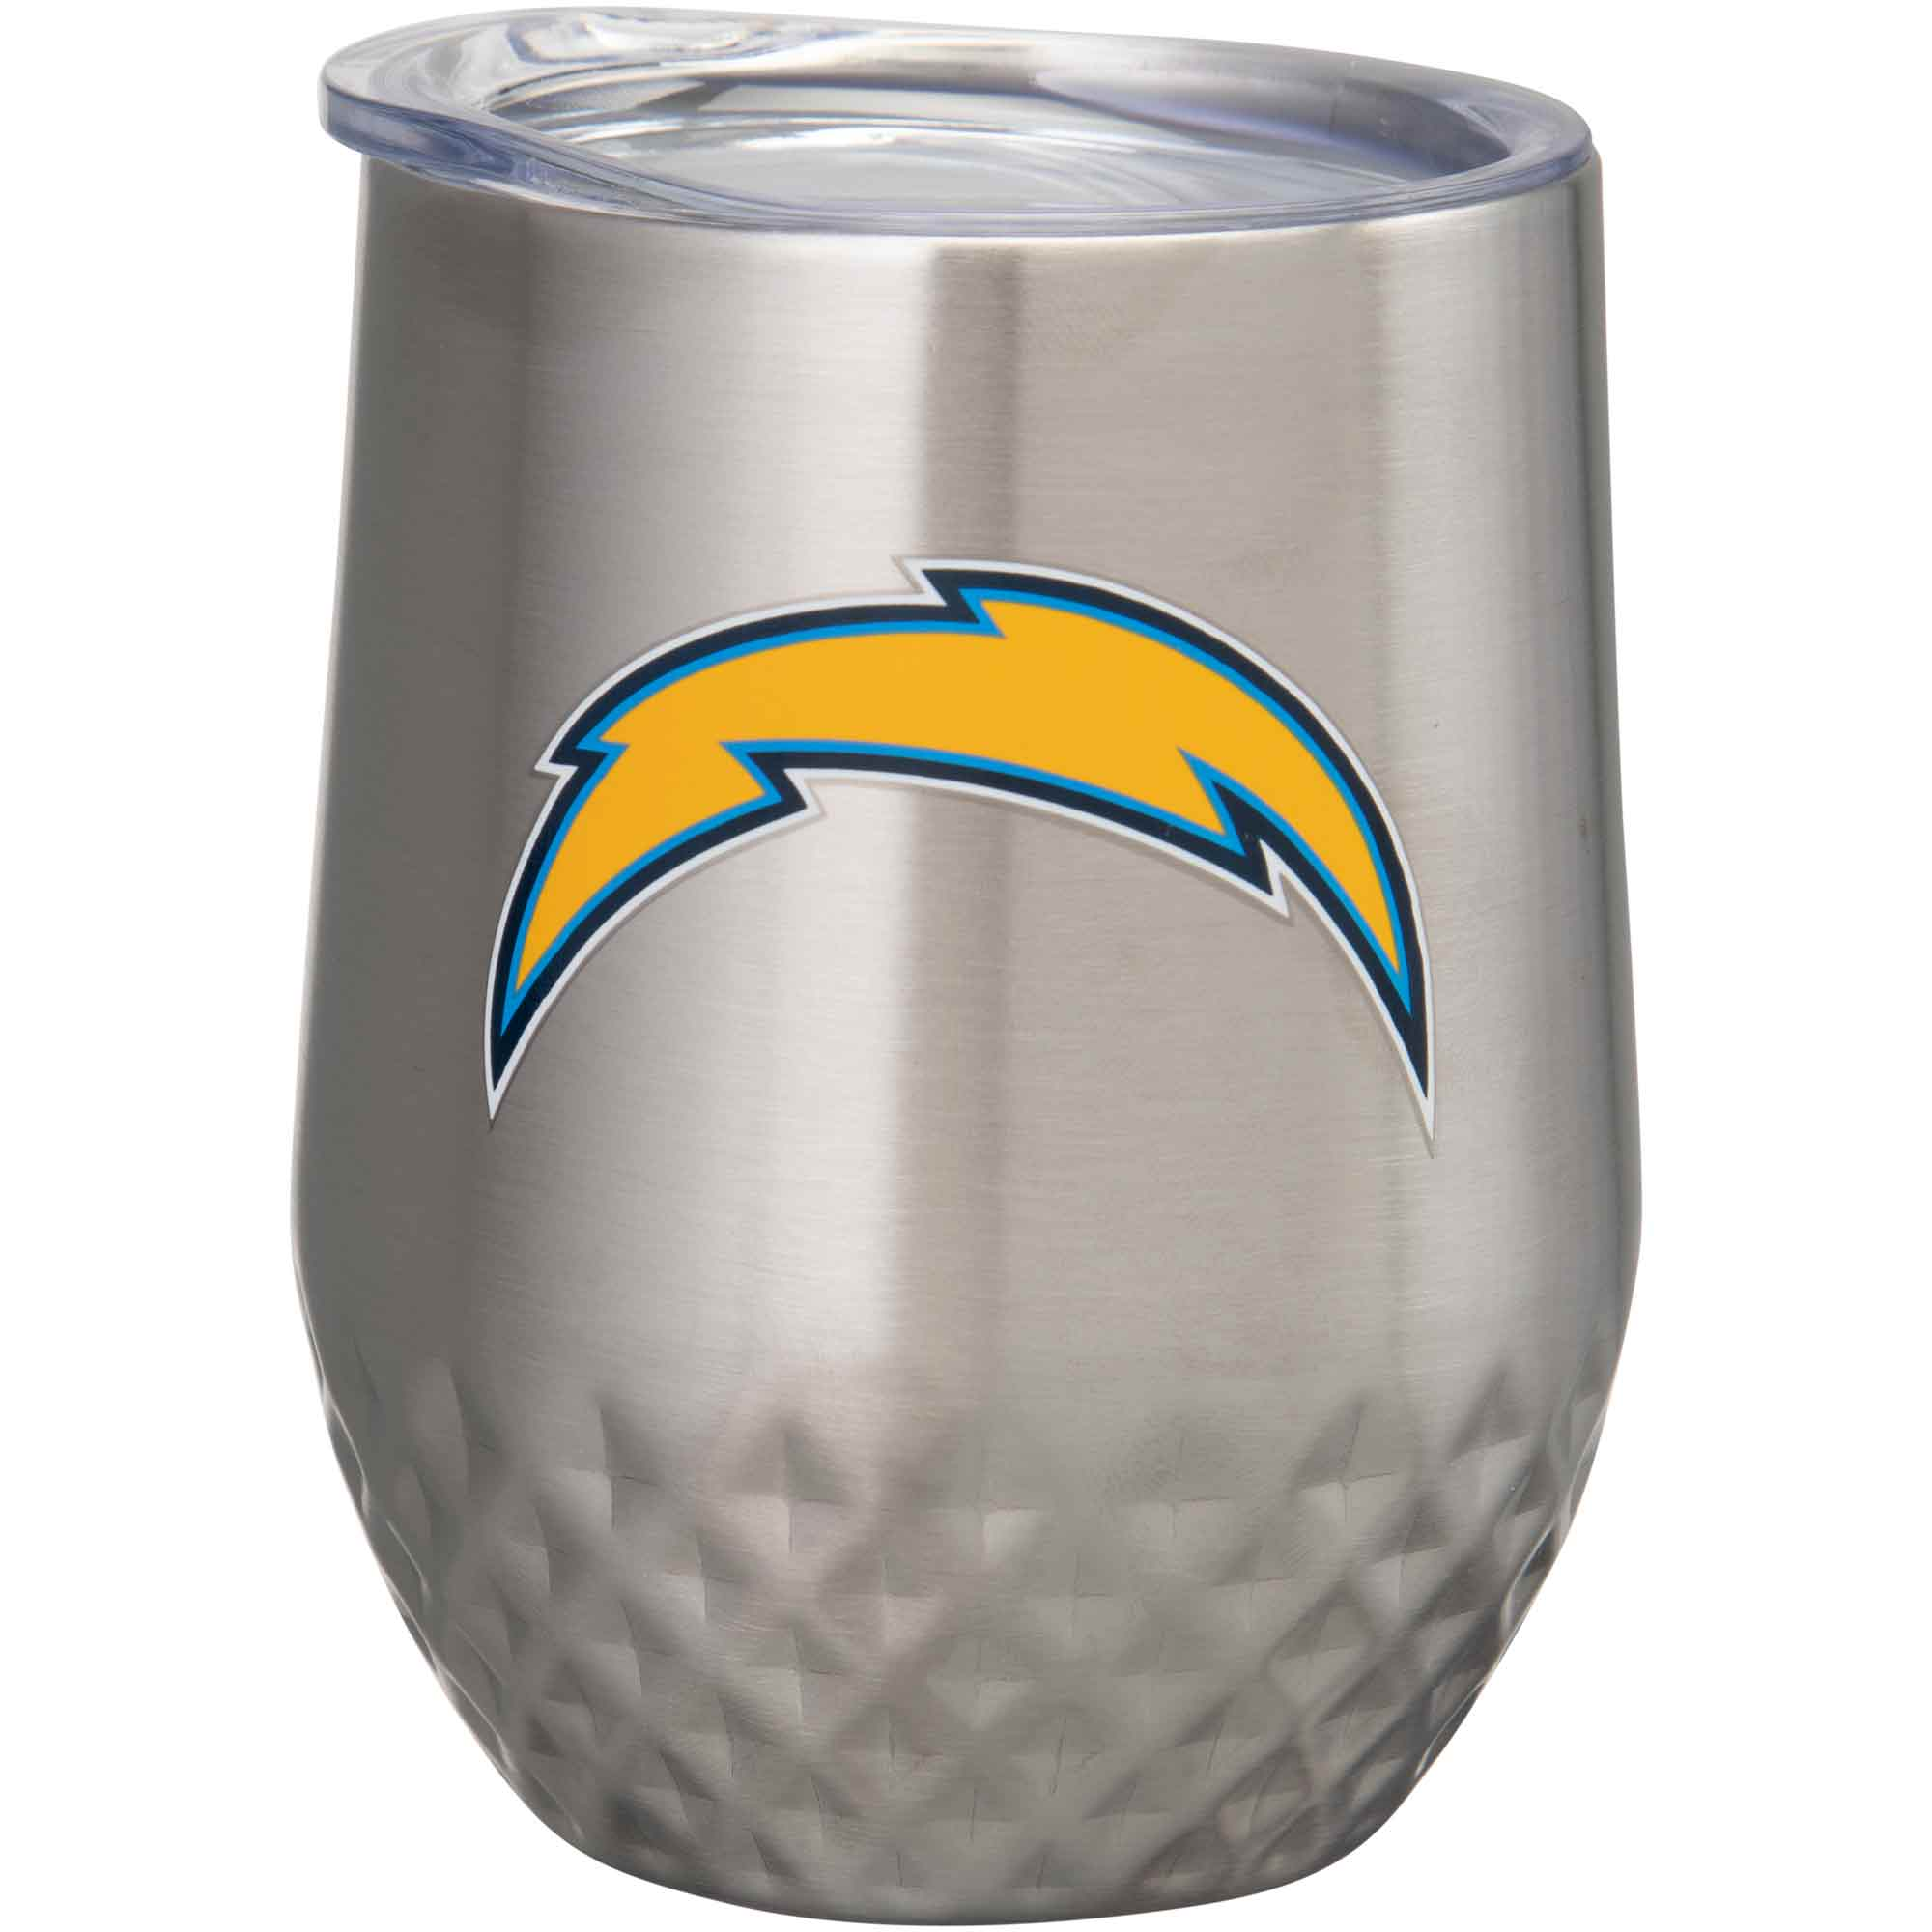 Los Angeles Chargers 12oz. Stainless Steel Stemless Diamond Tumbler - No Size